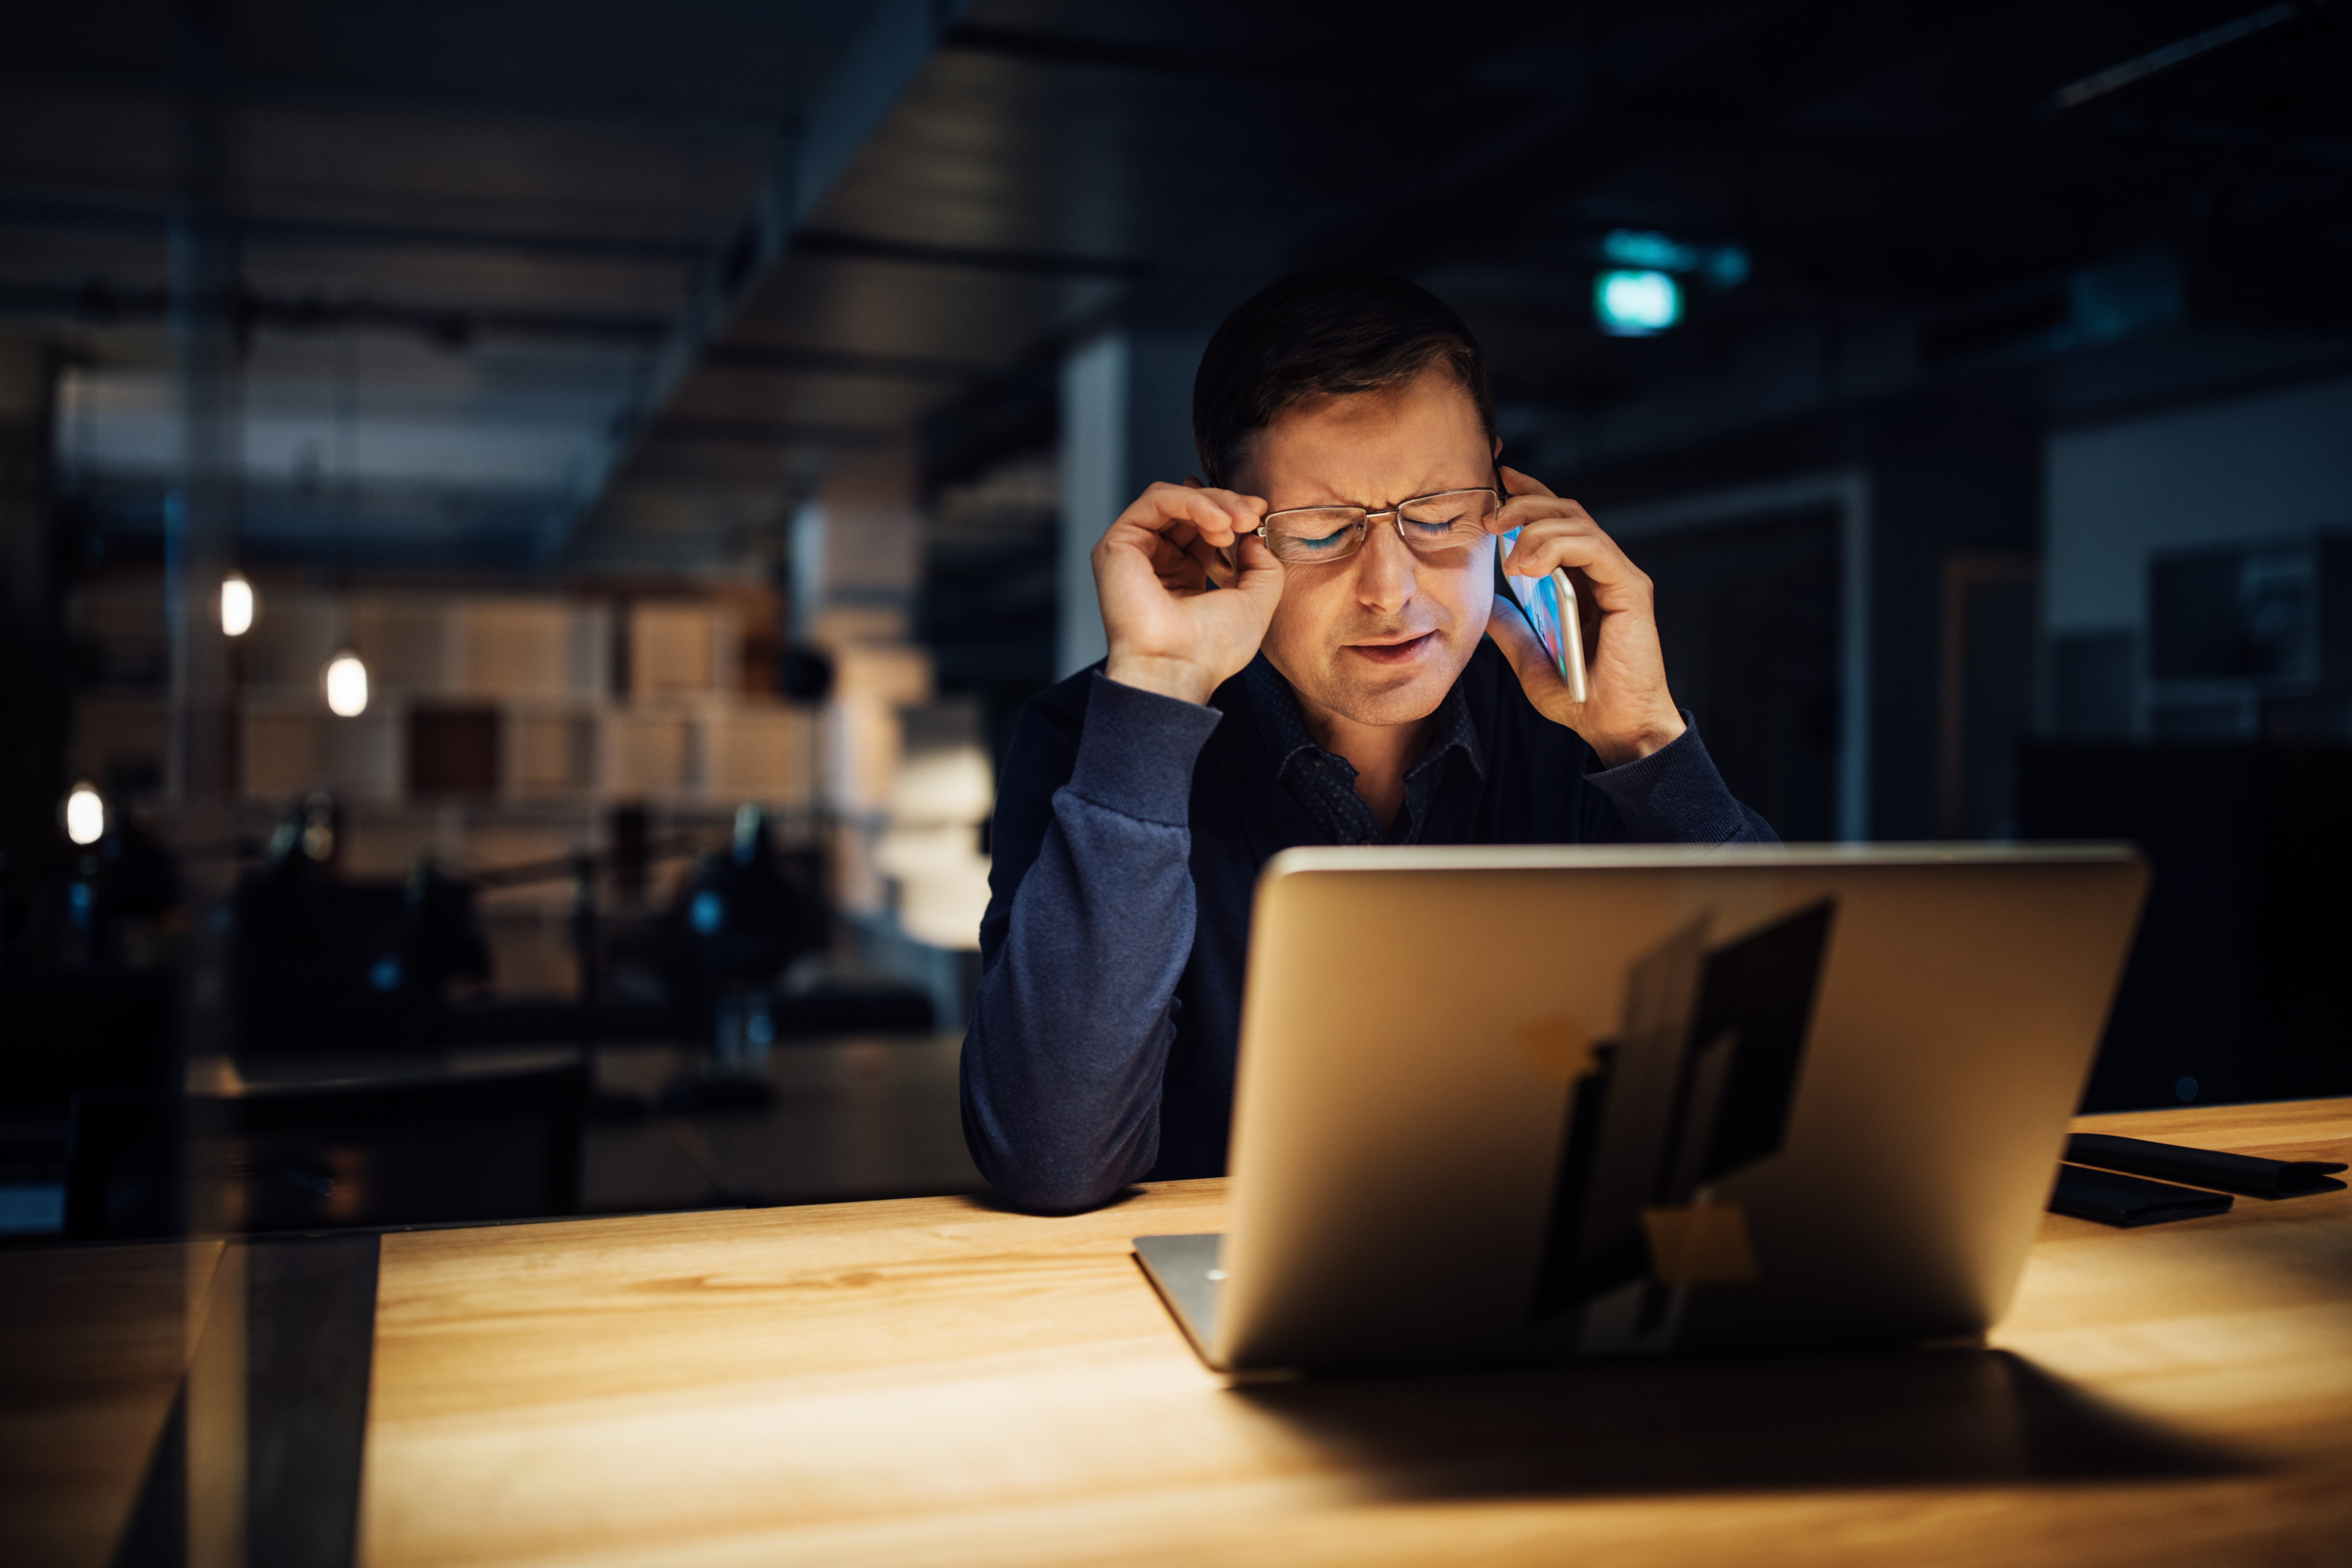 1874, 1874, Frustrated businessman using phone while working late on laptop, Cyber-attack-.jpg, 13199960, https://www.fivewaysinsurance.co.uk/wp-content/uploads/2020/02/Cyber-attack-.jpg, https://www.fivewaysinsurance.co.uk/2020/02/03/5-most-likely-sme-cyber-attacks/frustrated-businessman-using-phone-while-working-late-on-laptop/, , 8, , Businessman talking on mobile phone working late on laptop while sitting at desk in office, frustrated-businessman-using-phone-while-working-late-on-laptop, inherit, 1844, 2019-06-13 13:17:17, 2019-06-13 13:17:17, 0, image/jpeg, image, jpeg, https://www.fivewaysinsurance.co.uk/wp-includes/images/media/default.png, 6720, 4480, Array